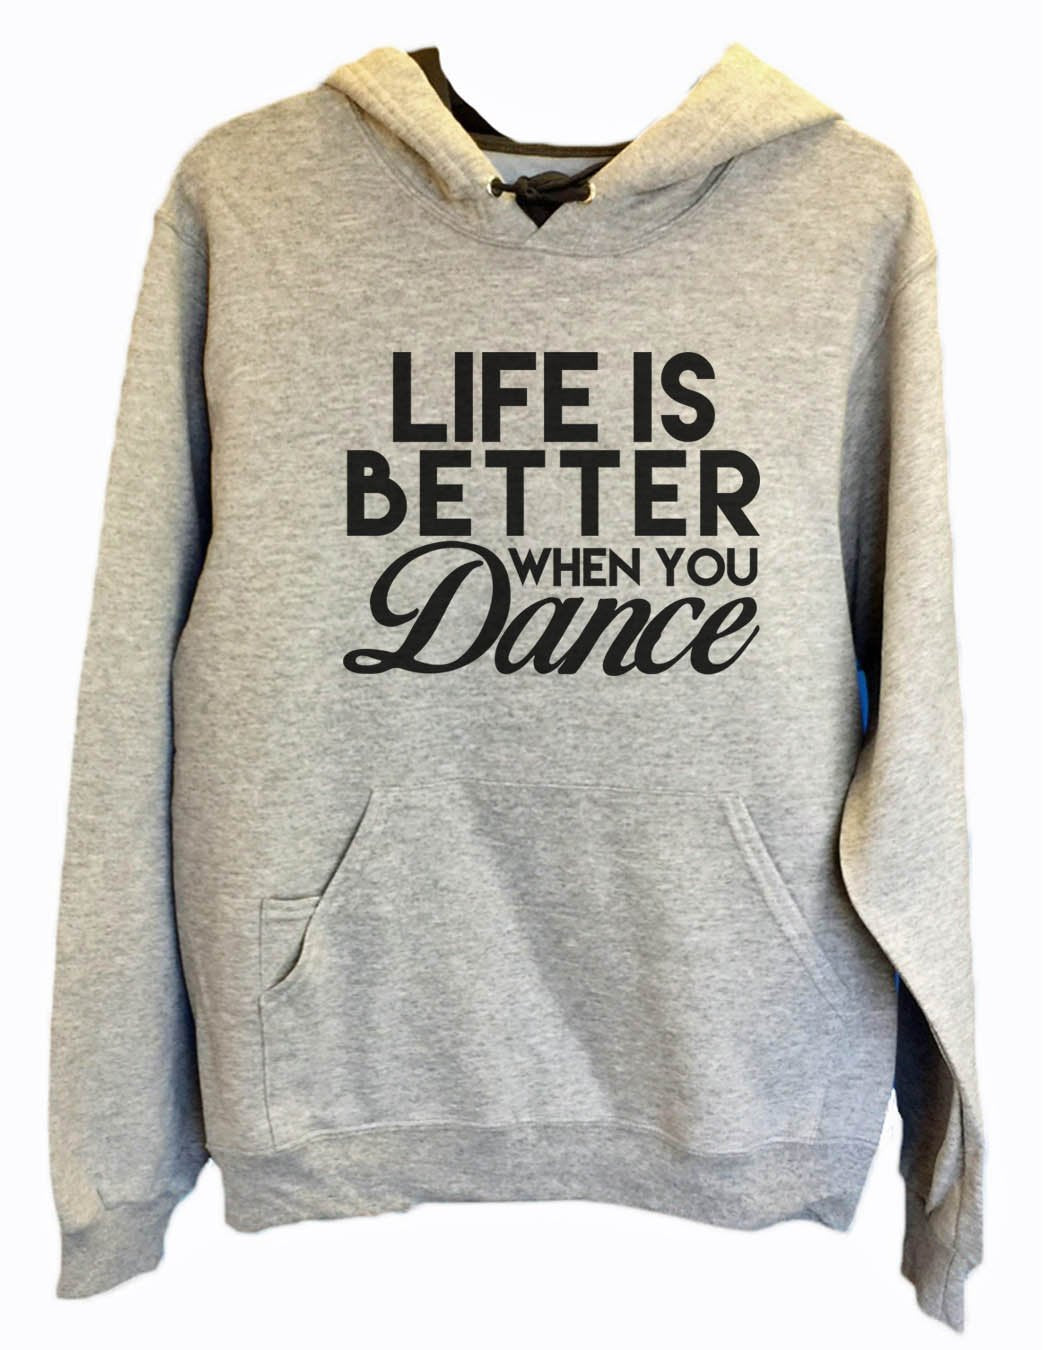 UNISEX HOODIE - Life Is Better When Dance - FUNNY MENS AND WOMENS HOODED SWEATSHIRTS - 2127 Funny Shirt Small / Heather Grey